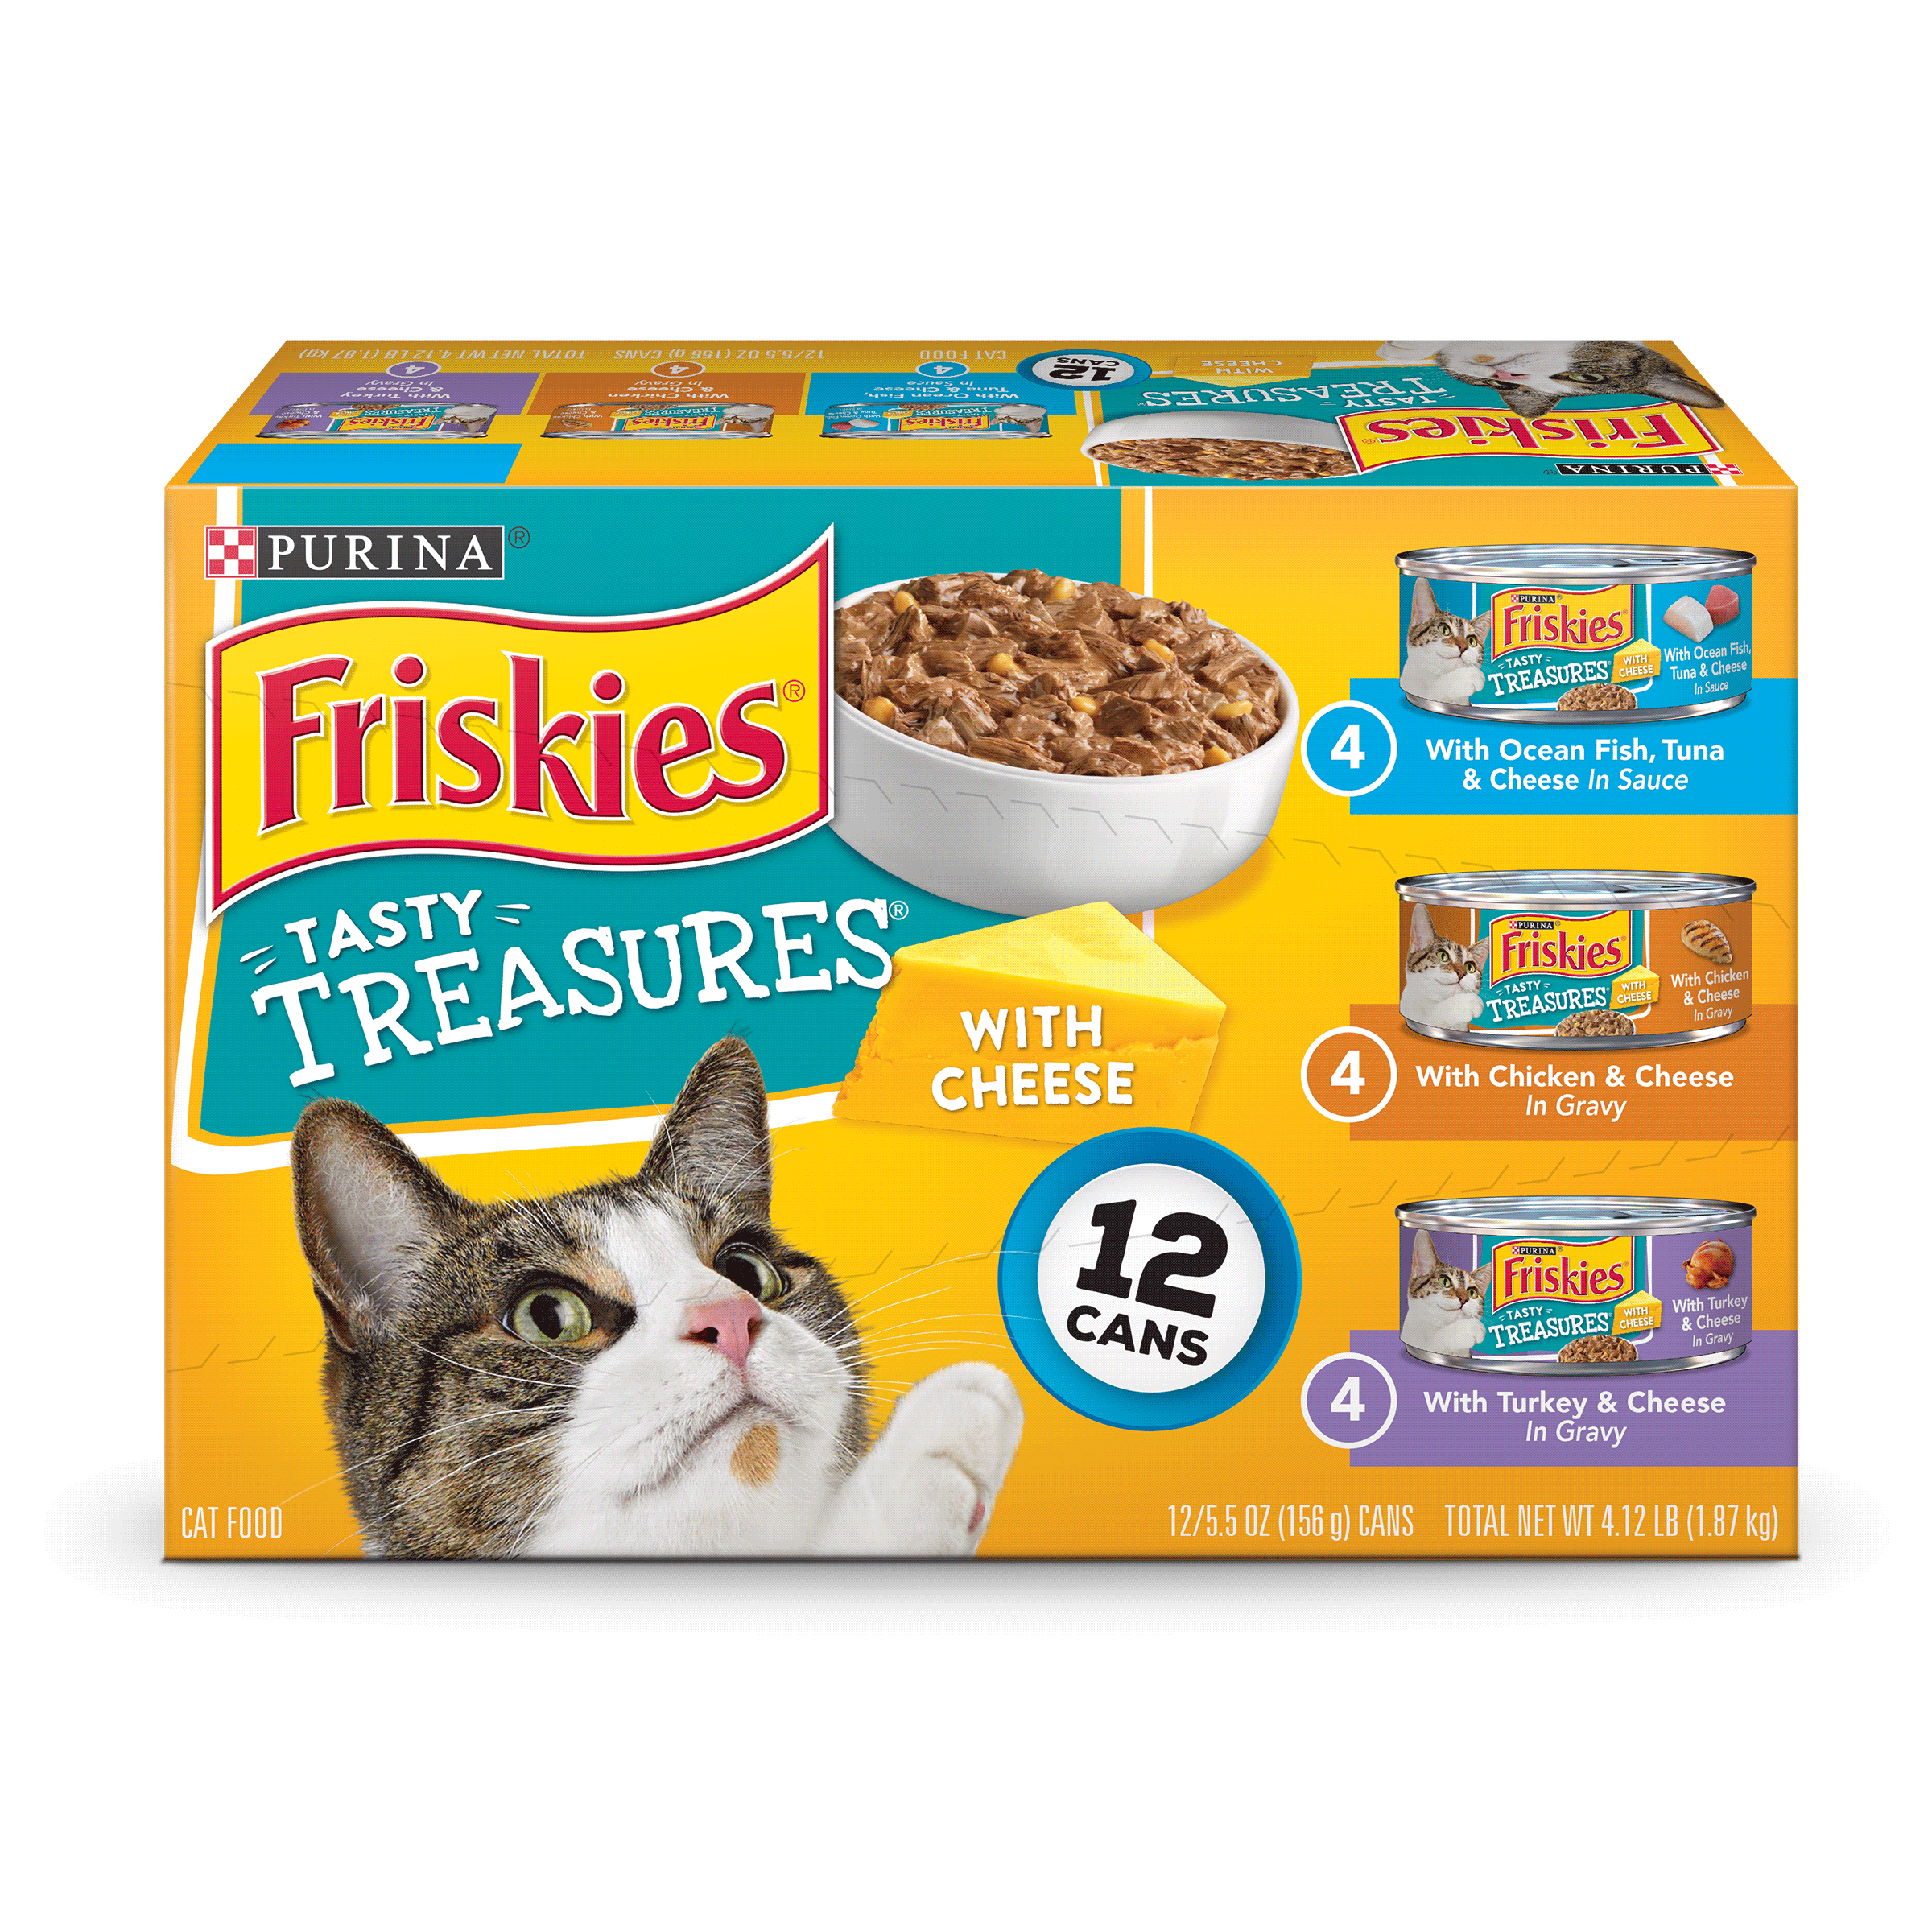 Friskies Tasty Treasures With Cheese Adult Wet Cat Food Variety Pack (12) 5.5 oz. Cans by Nestle Purina Petcare Company